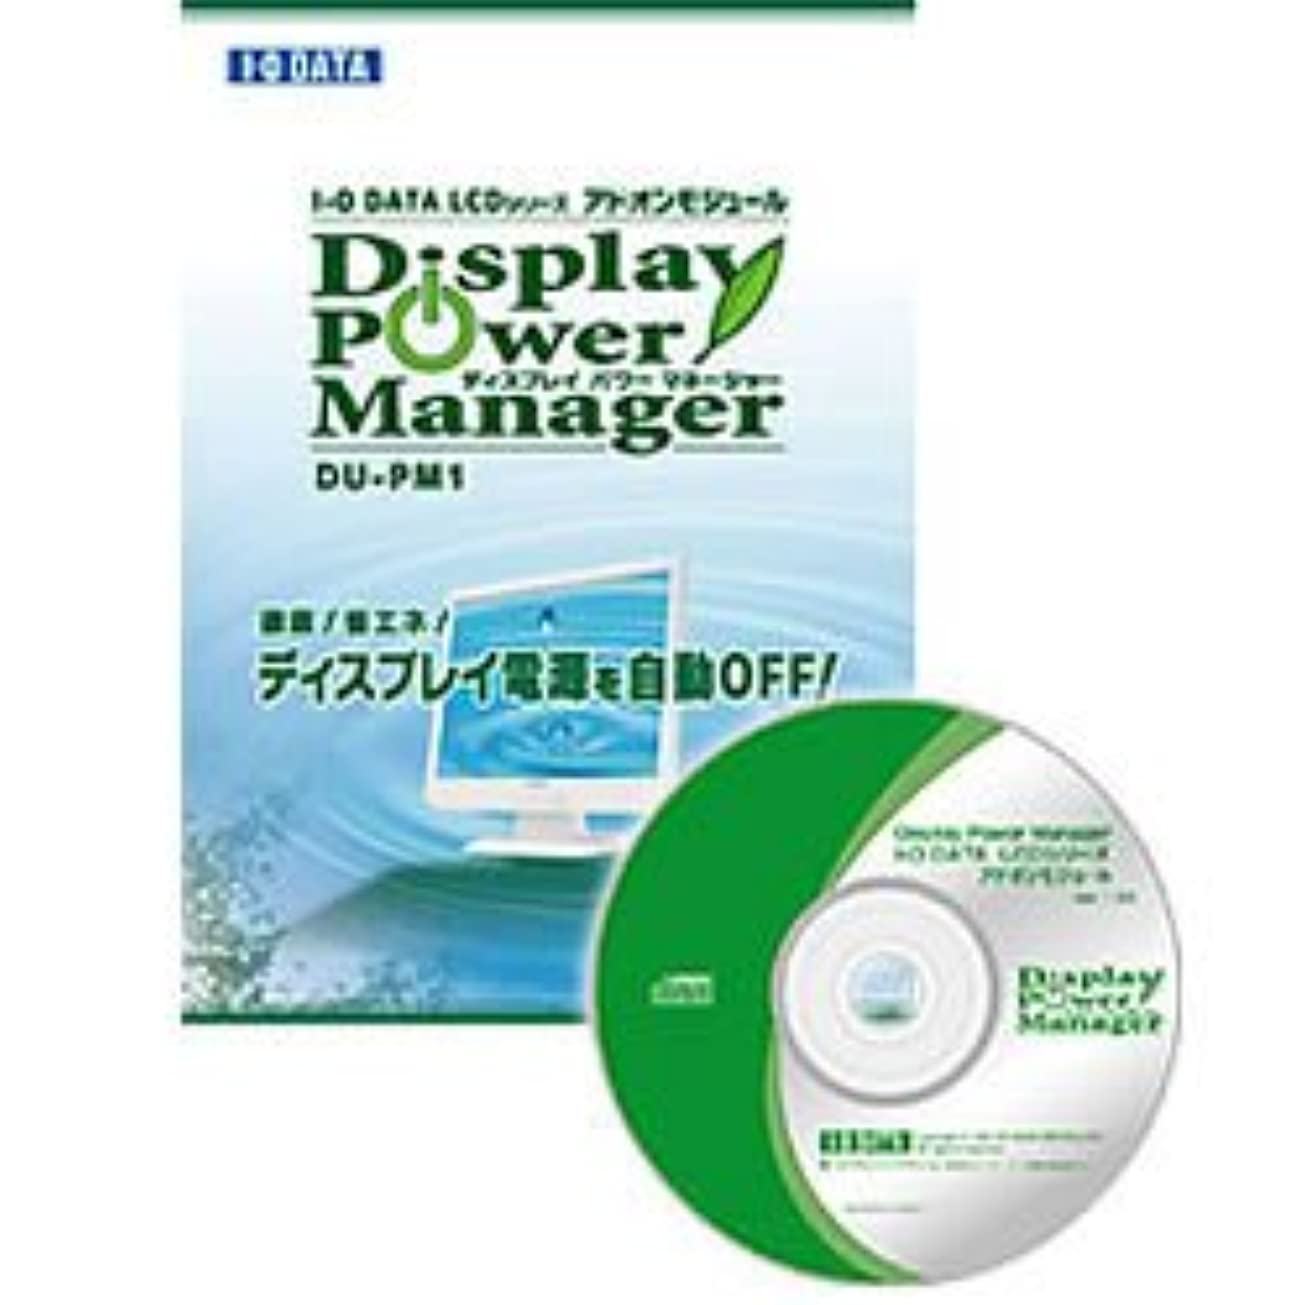 くつろぎ生まれオーナーDisplay Utility Power Manager Ver.1